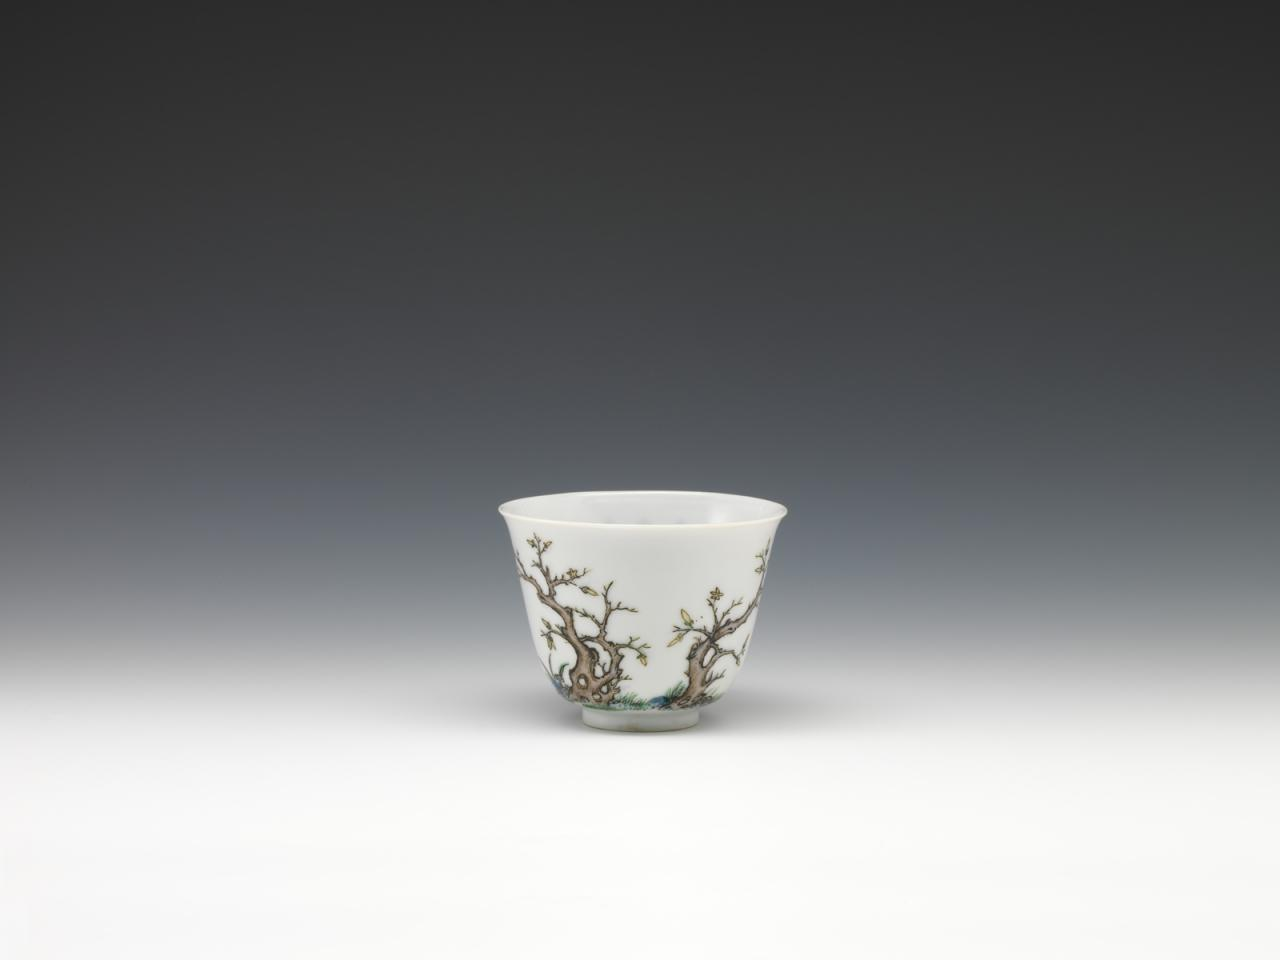 Twelve cups with flowers representing the twelve months in wucai enamels-March image